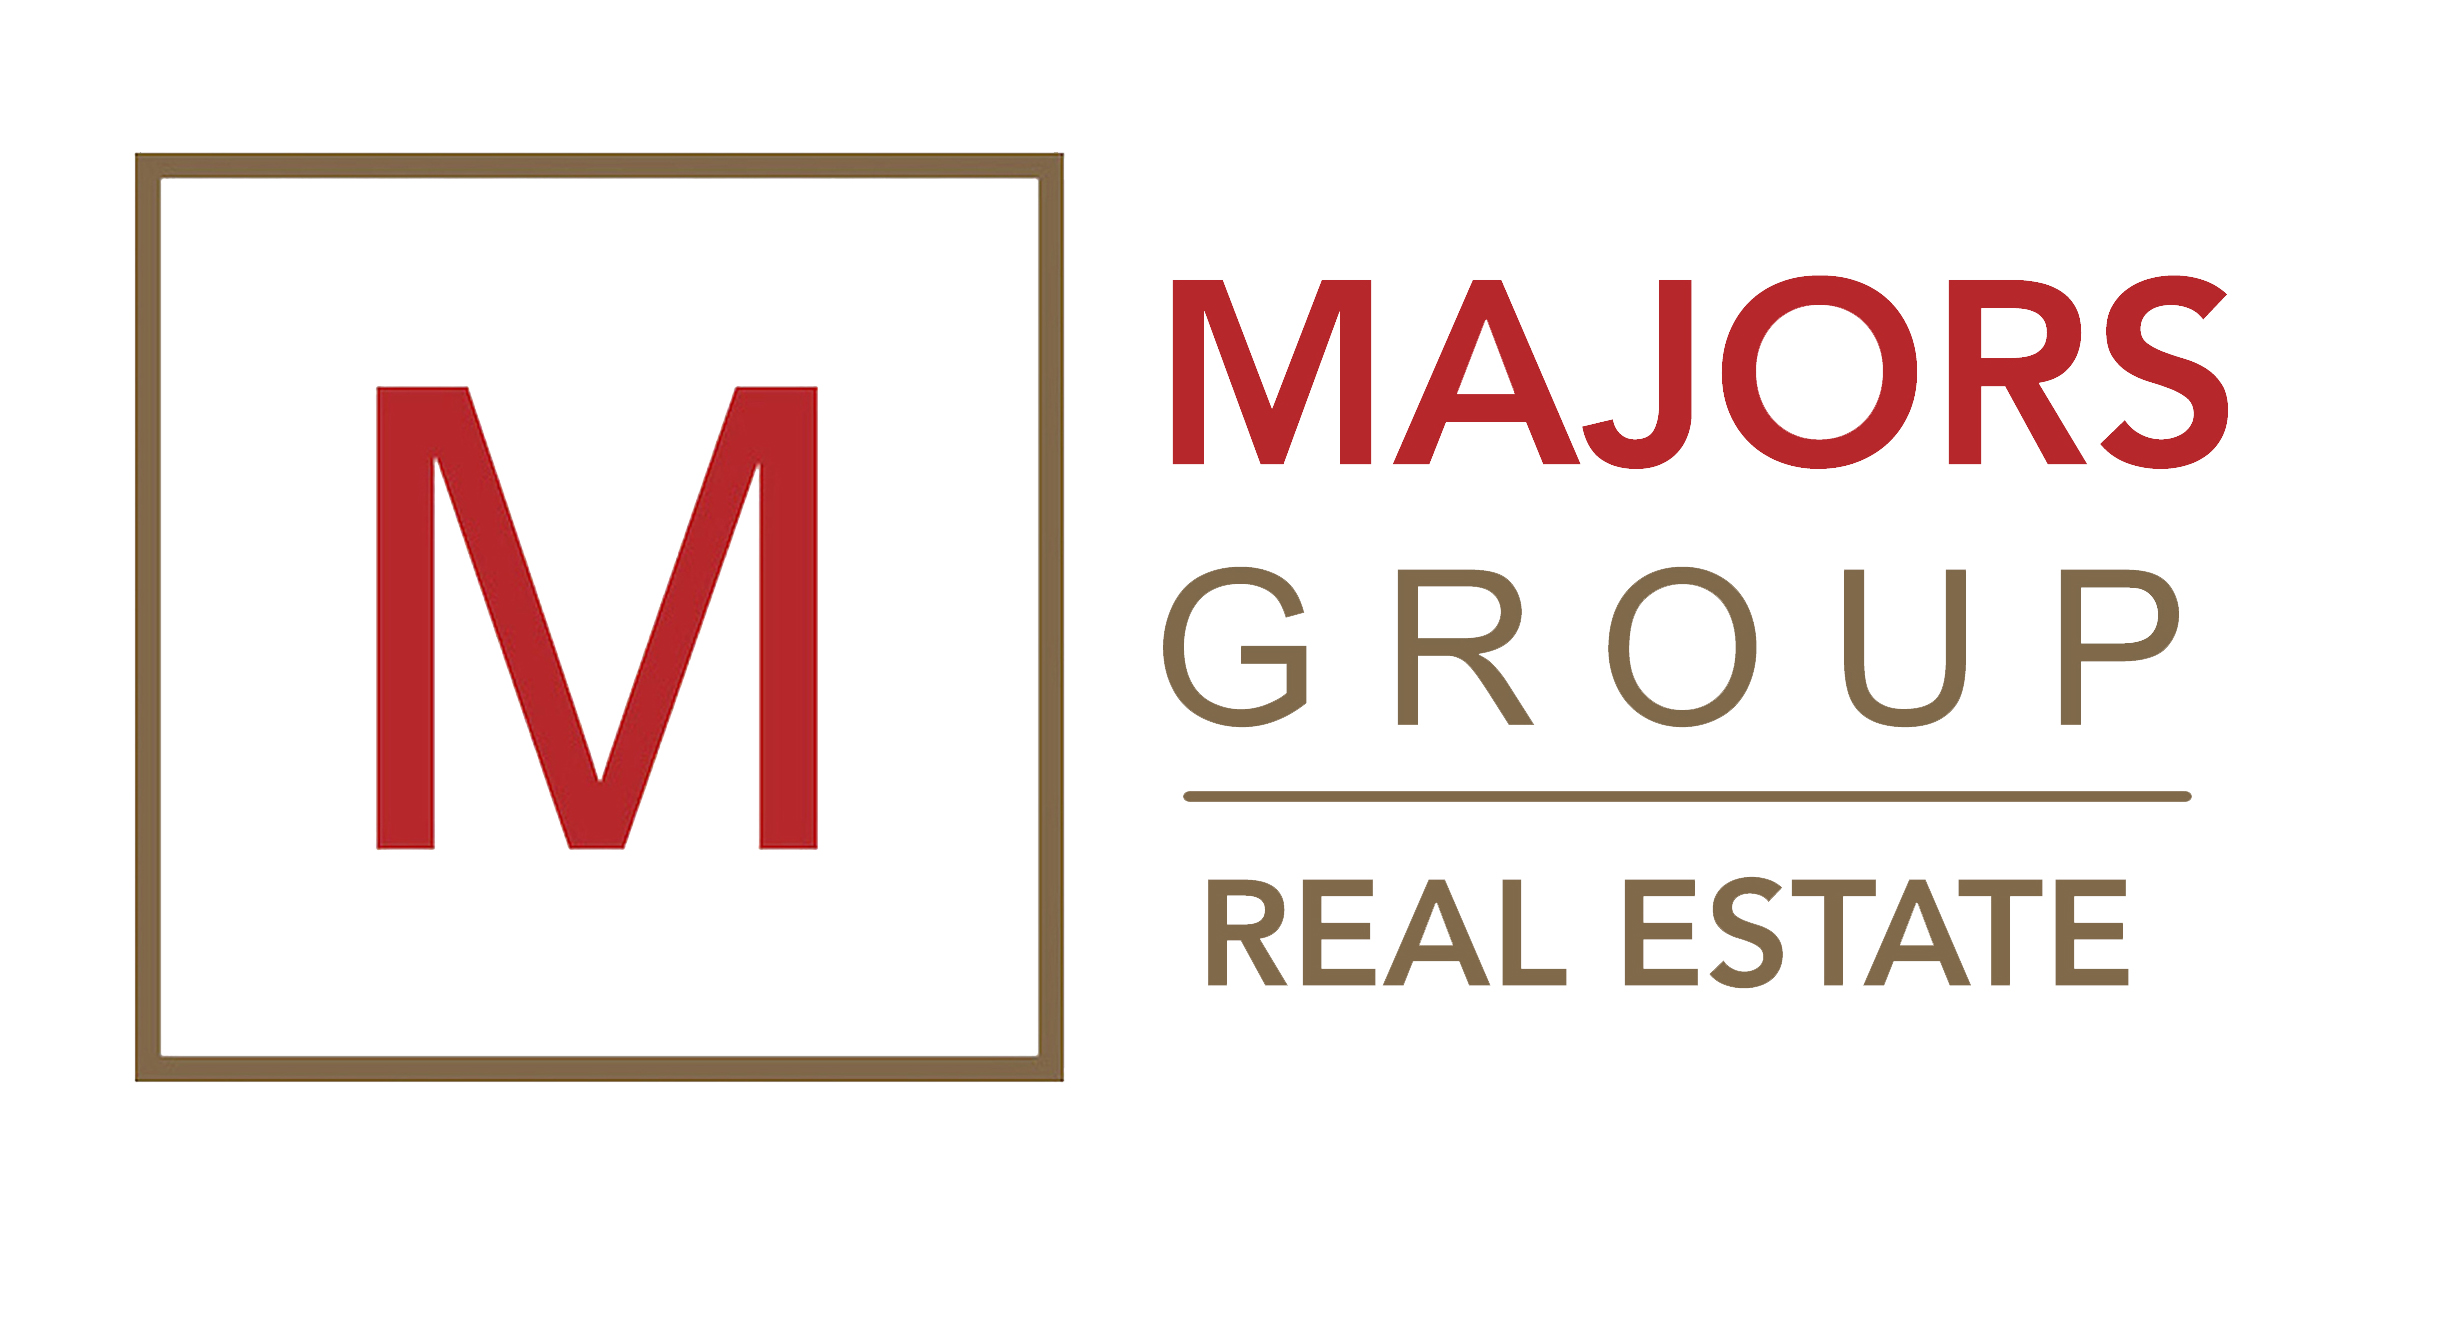 Majors Group